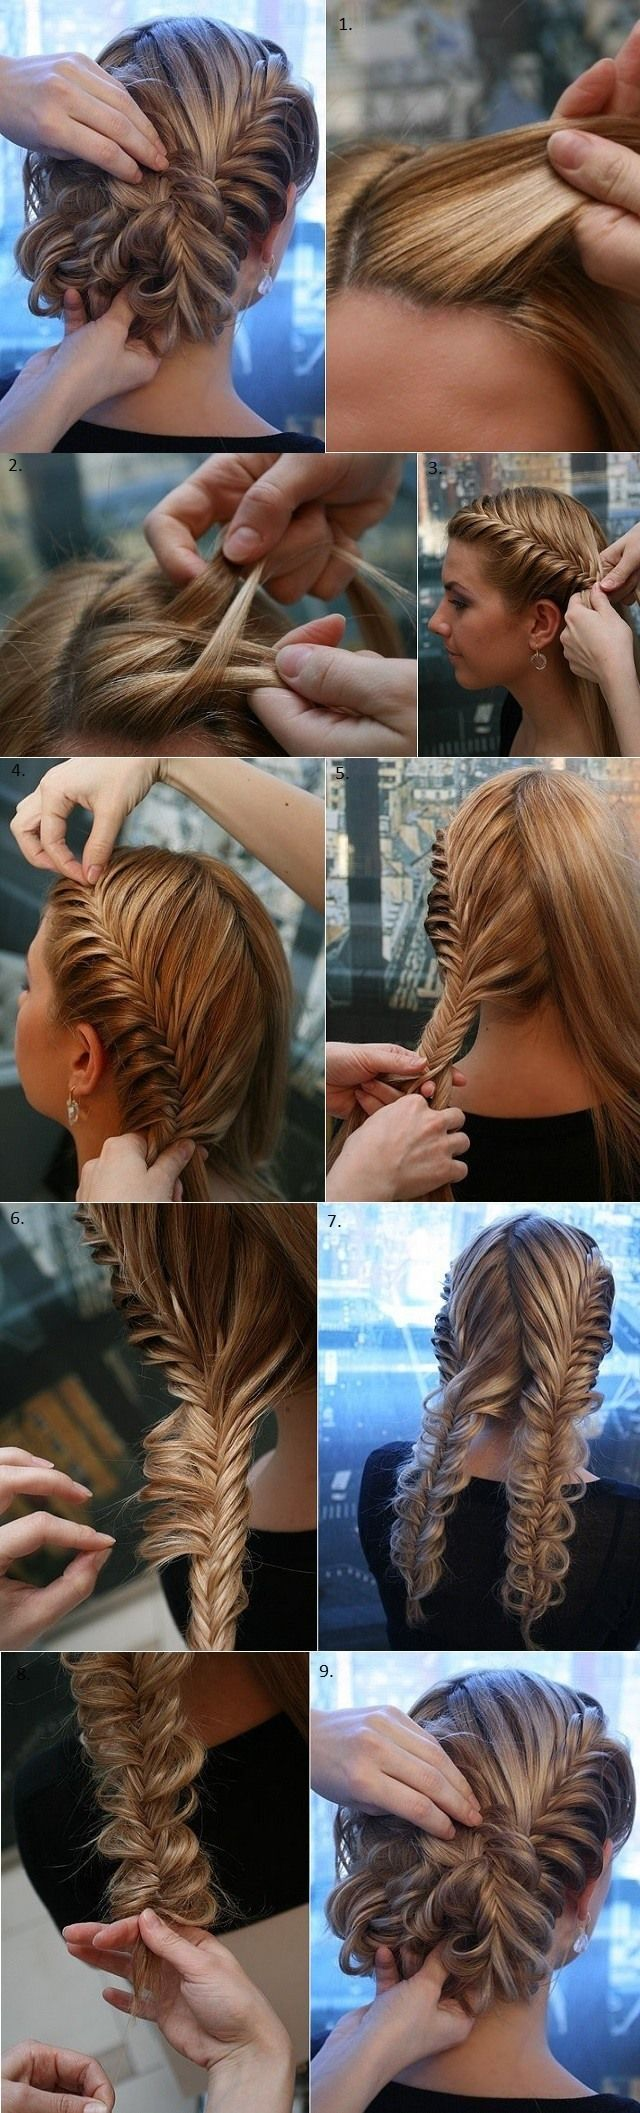 20 Cute and Easy Braided Hairstyle Tutorials -